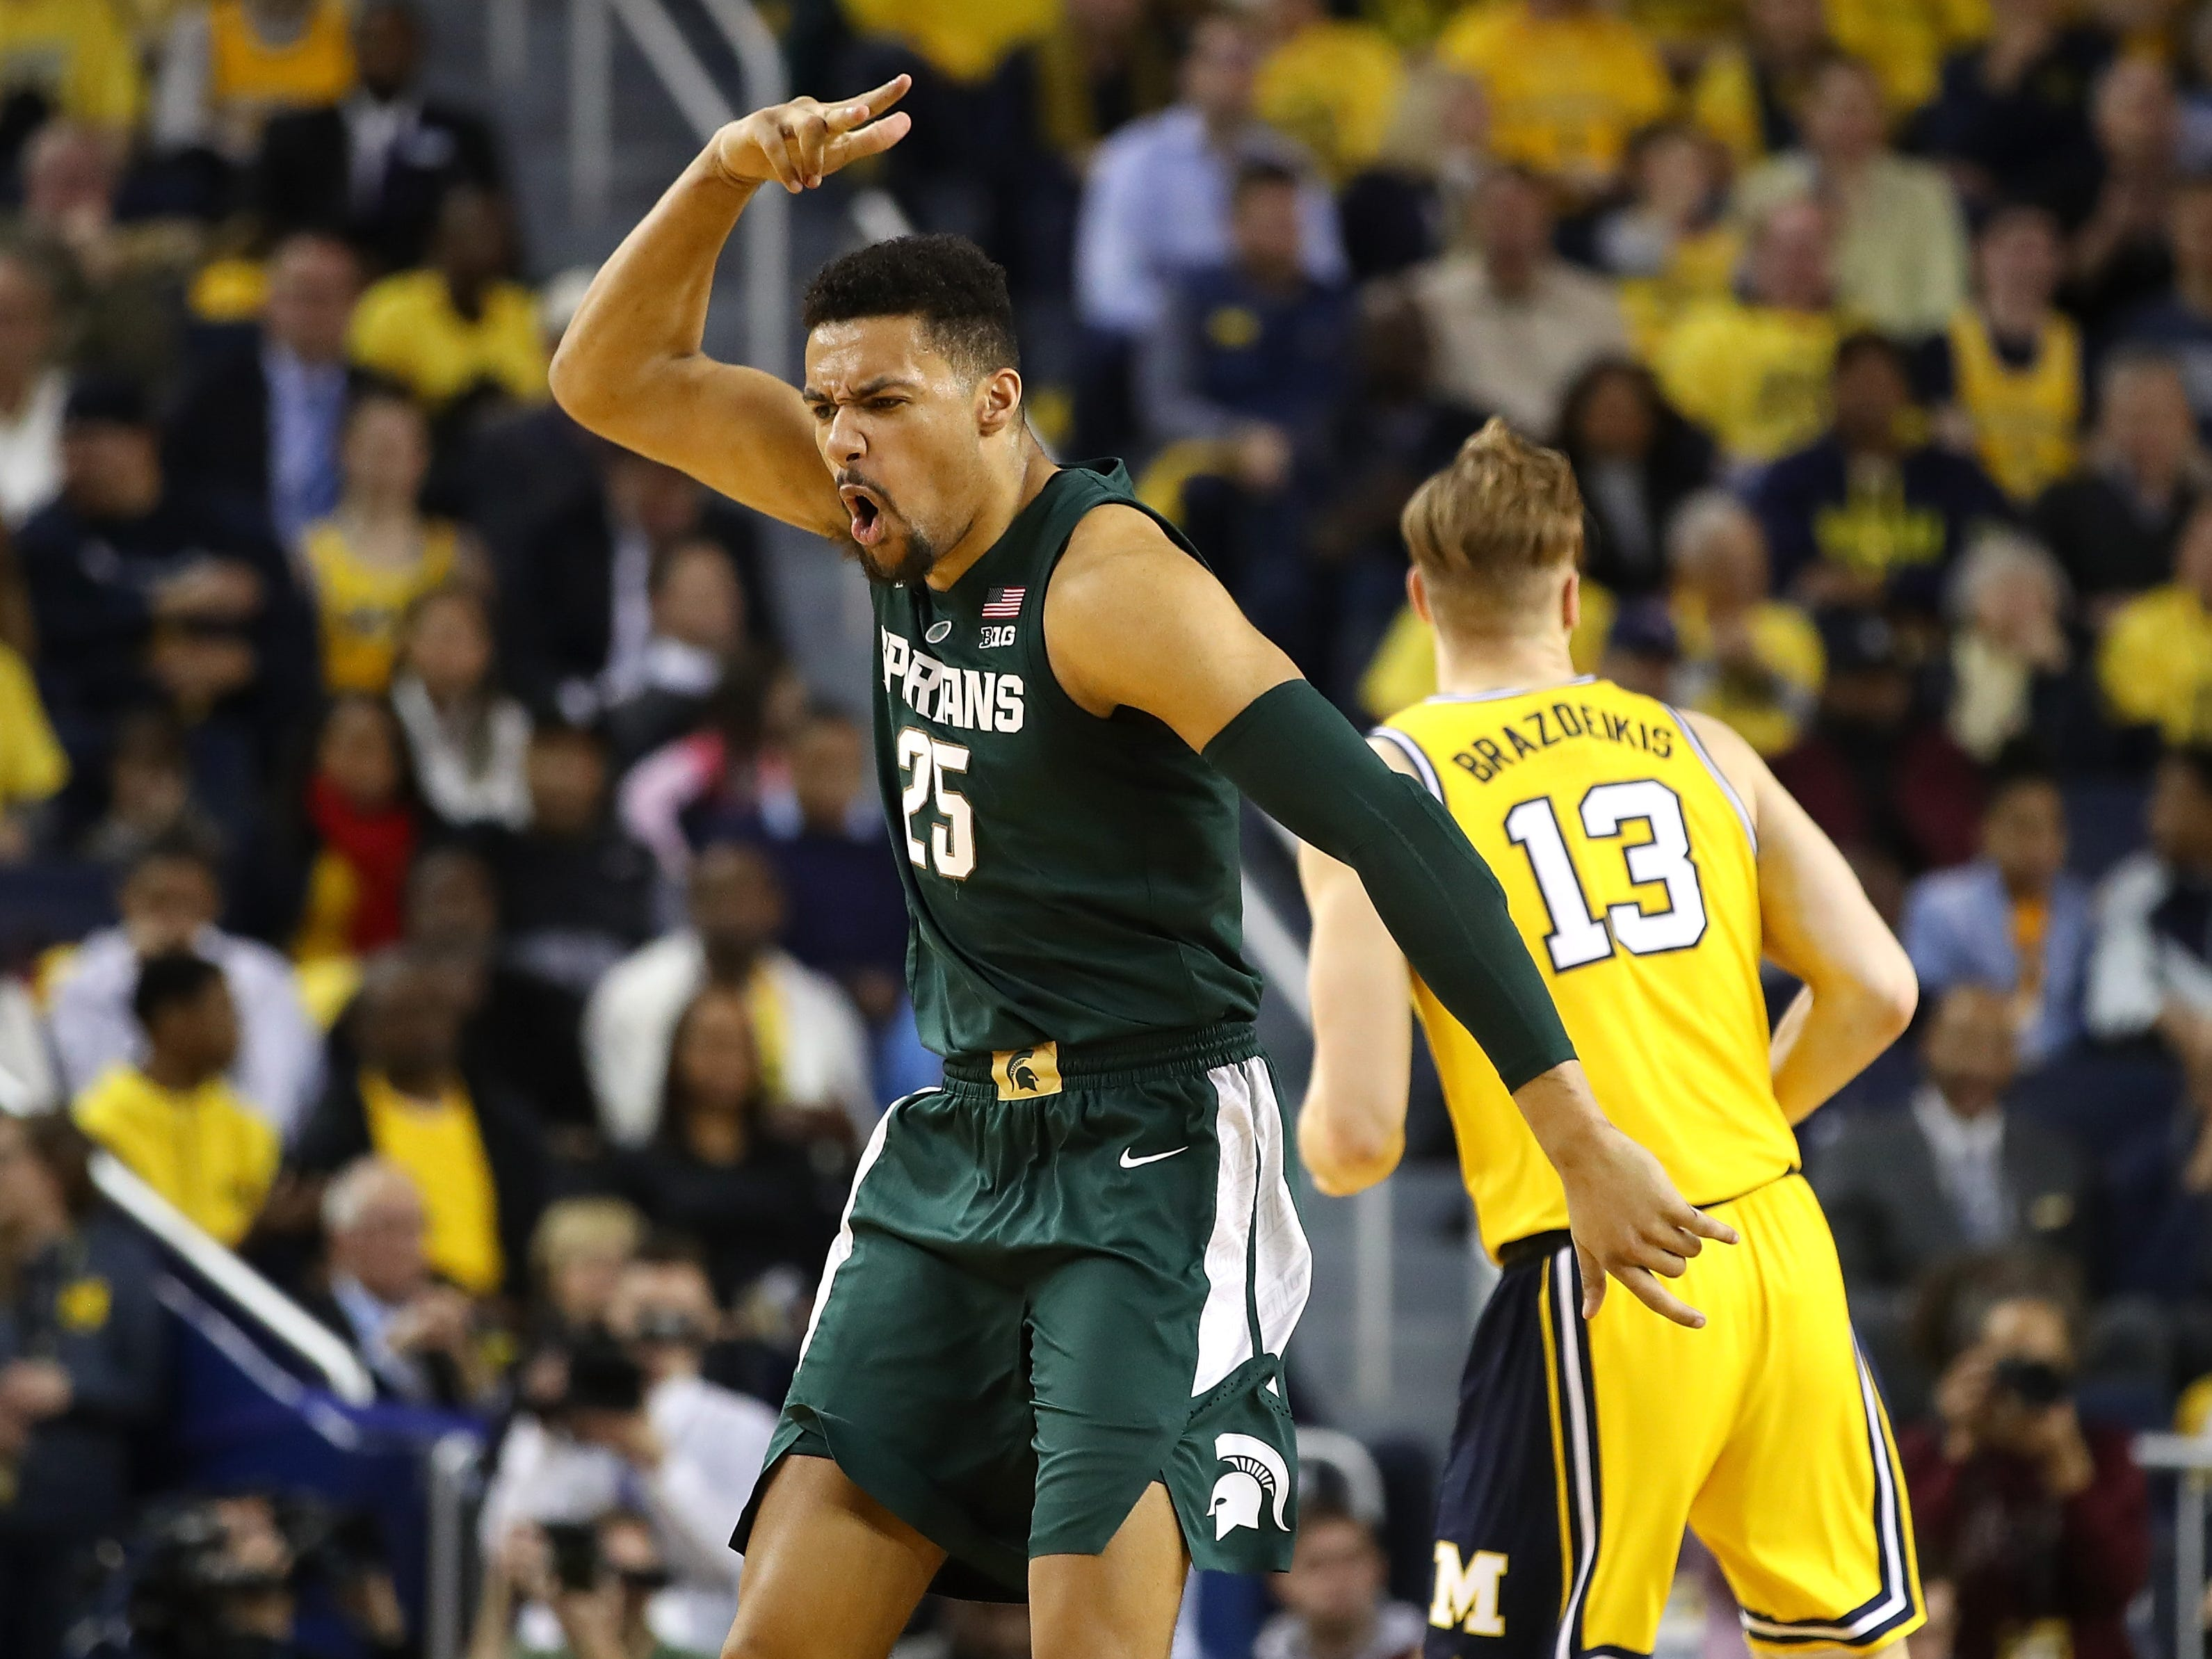 Michigan State's Kenny Goins reacts after a 3-point basket against Michigan at Crisler Center on Feb. 24, 2019 in Ann Arbor.